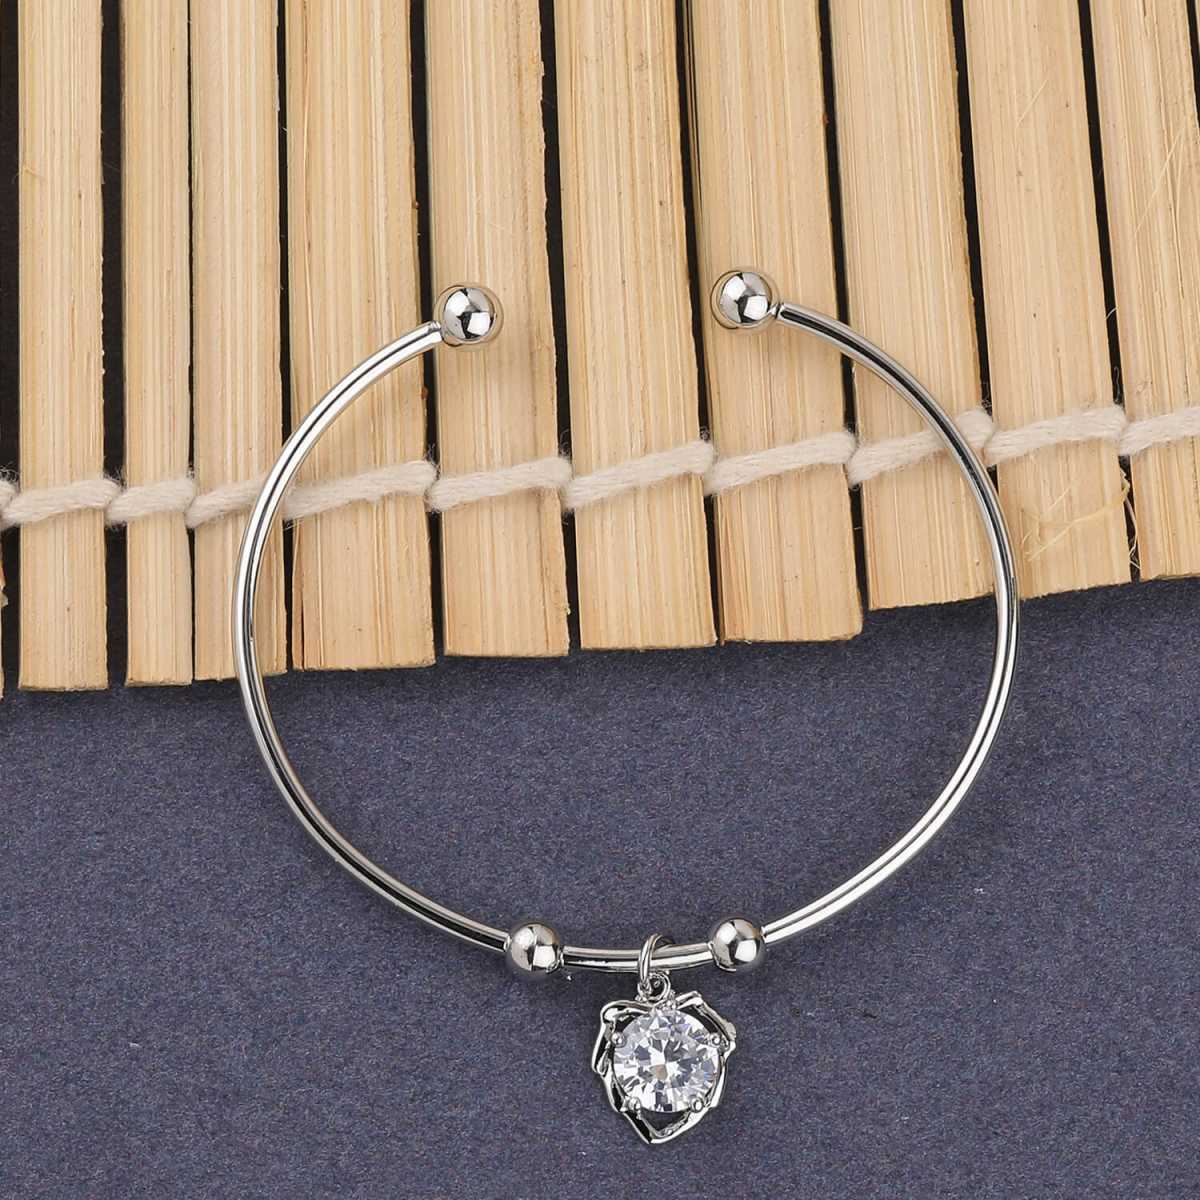 SILVER SHINE Party Wear Delicate Look Adjustable Bracelet With Diamond For Women Girls